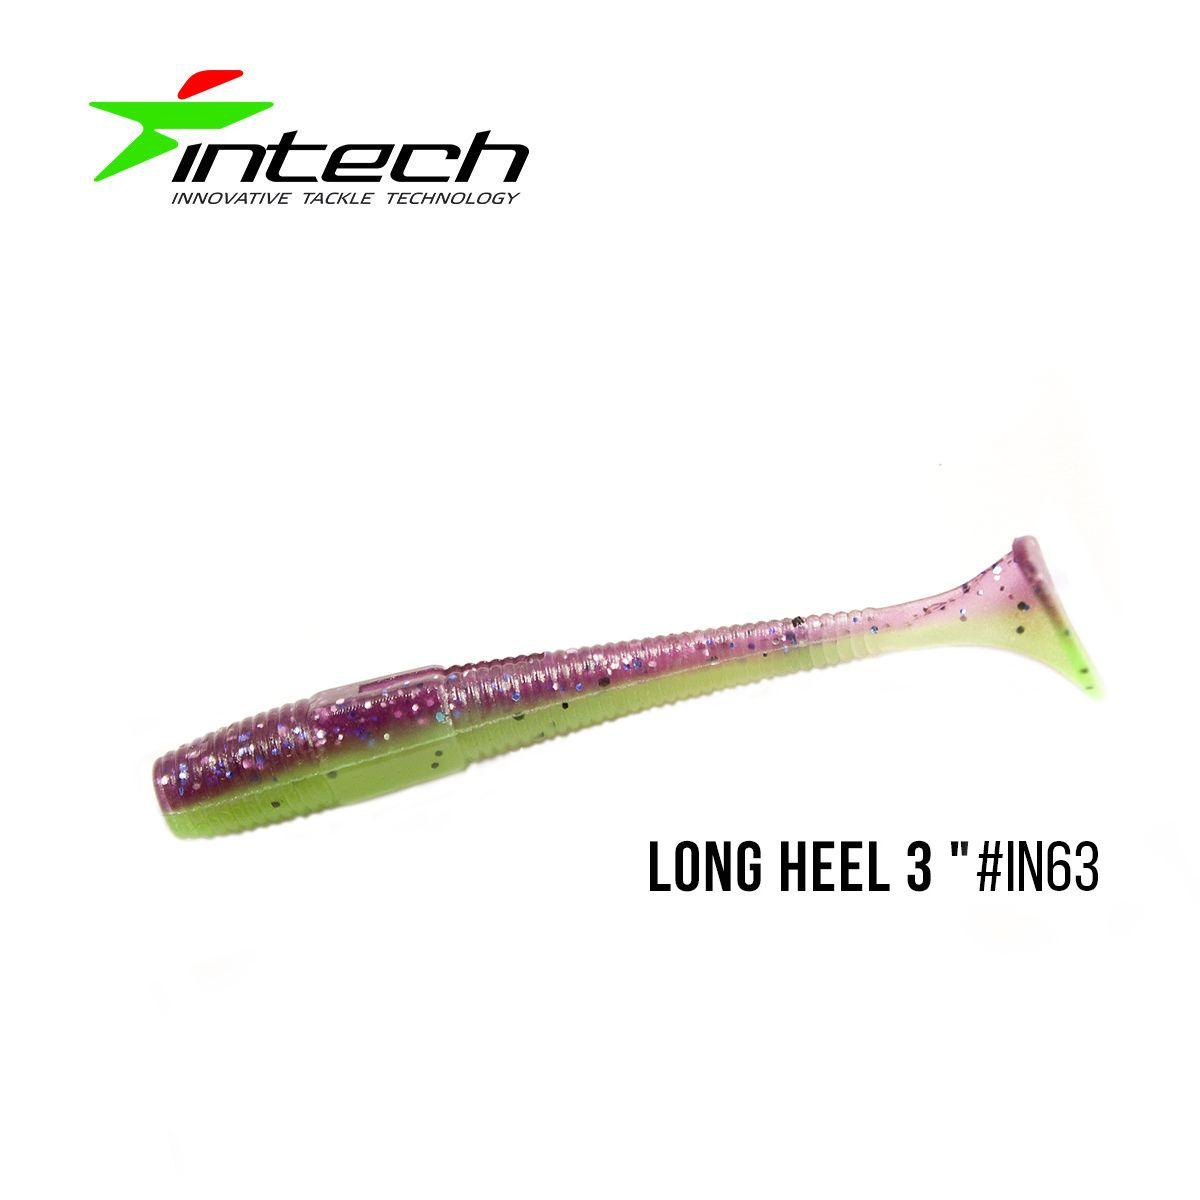 """.Приманка Intech Long Heel 3 ""(8 шт) (IN63)"